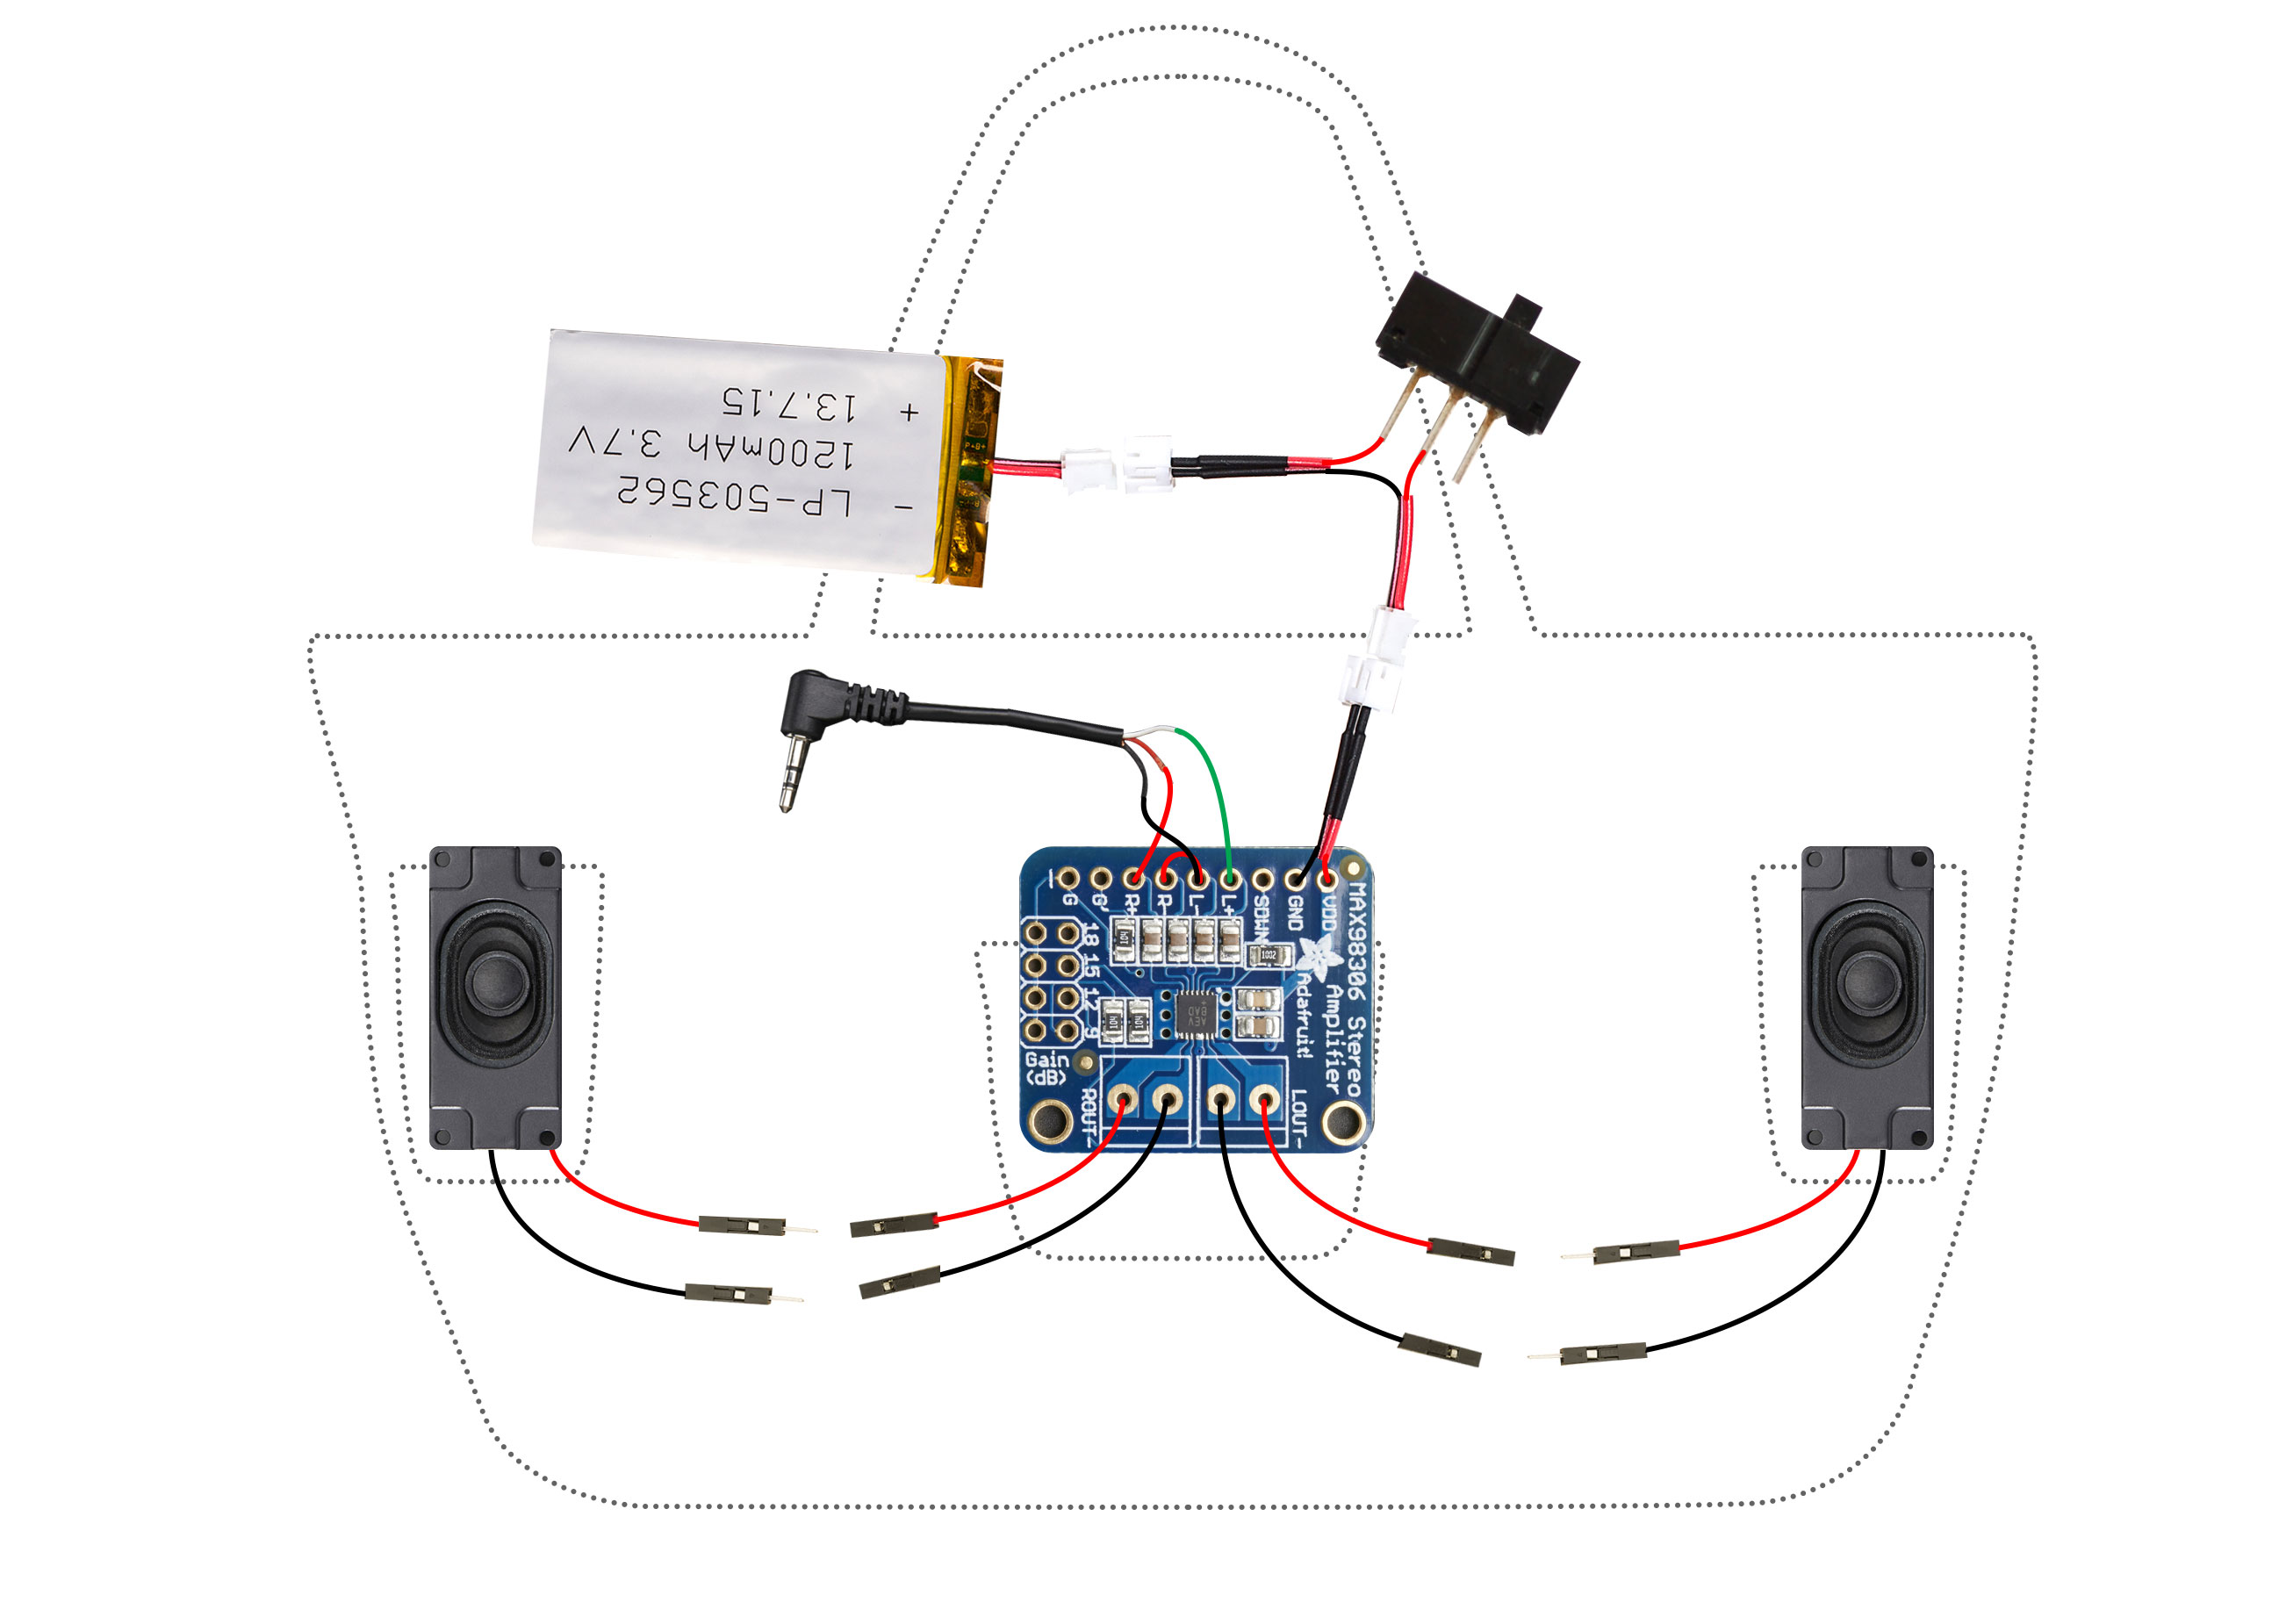 3d_printing_circuit layout?1395327141 circuit diagram boombox beach bag with audio amp and speakers wiring diagram for amp and speakers at bayanpartner.co